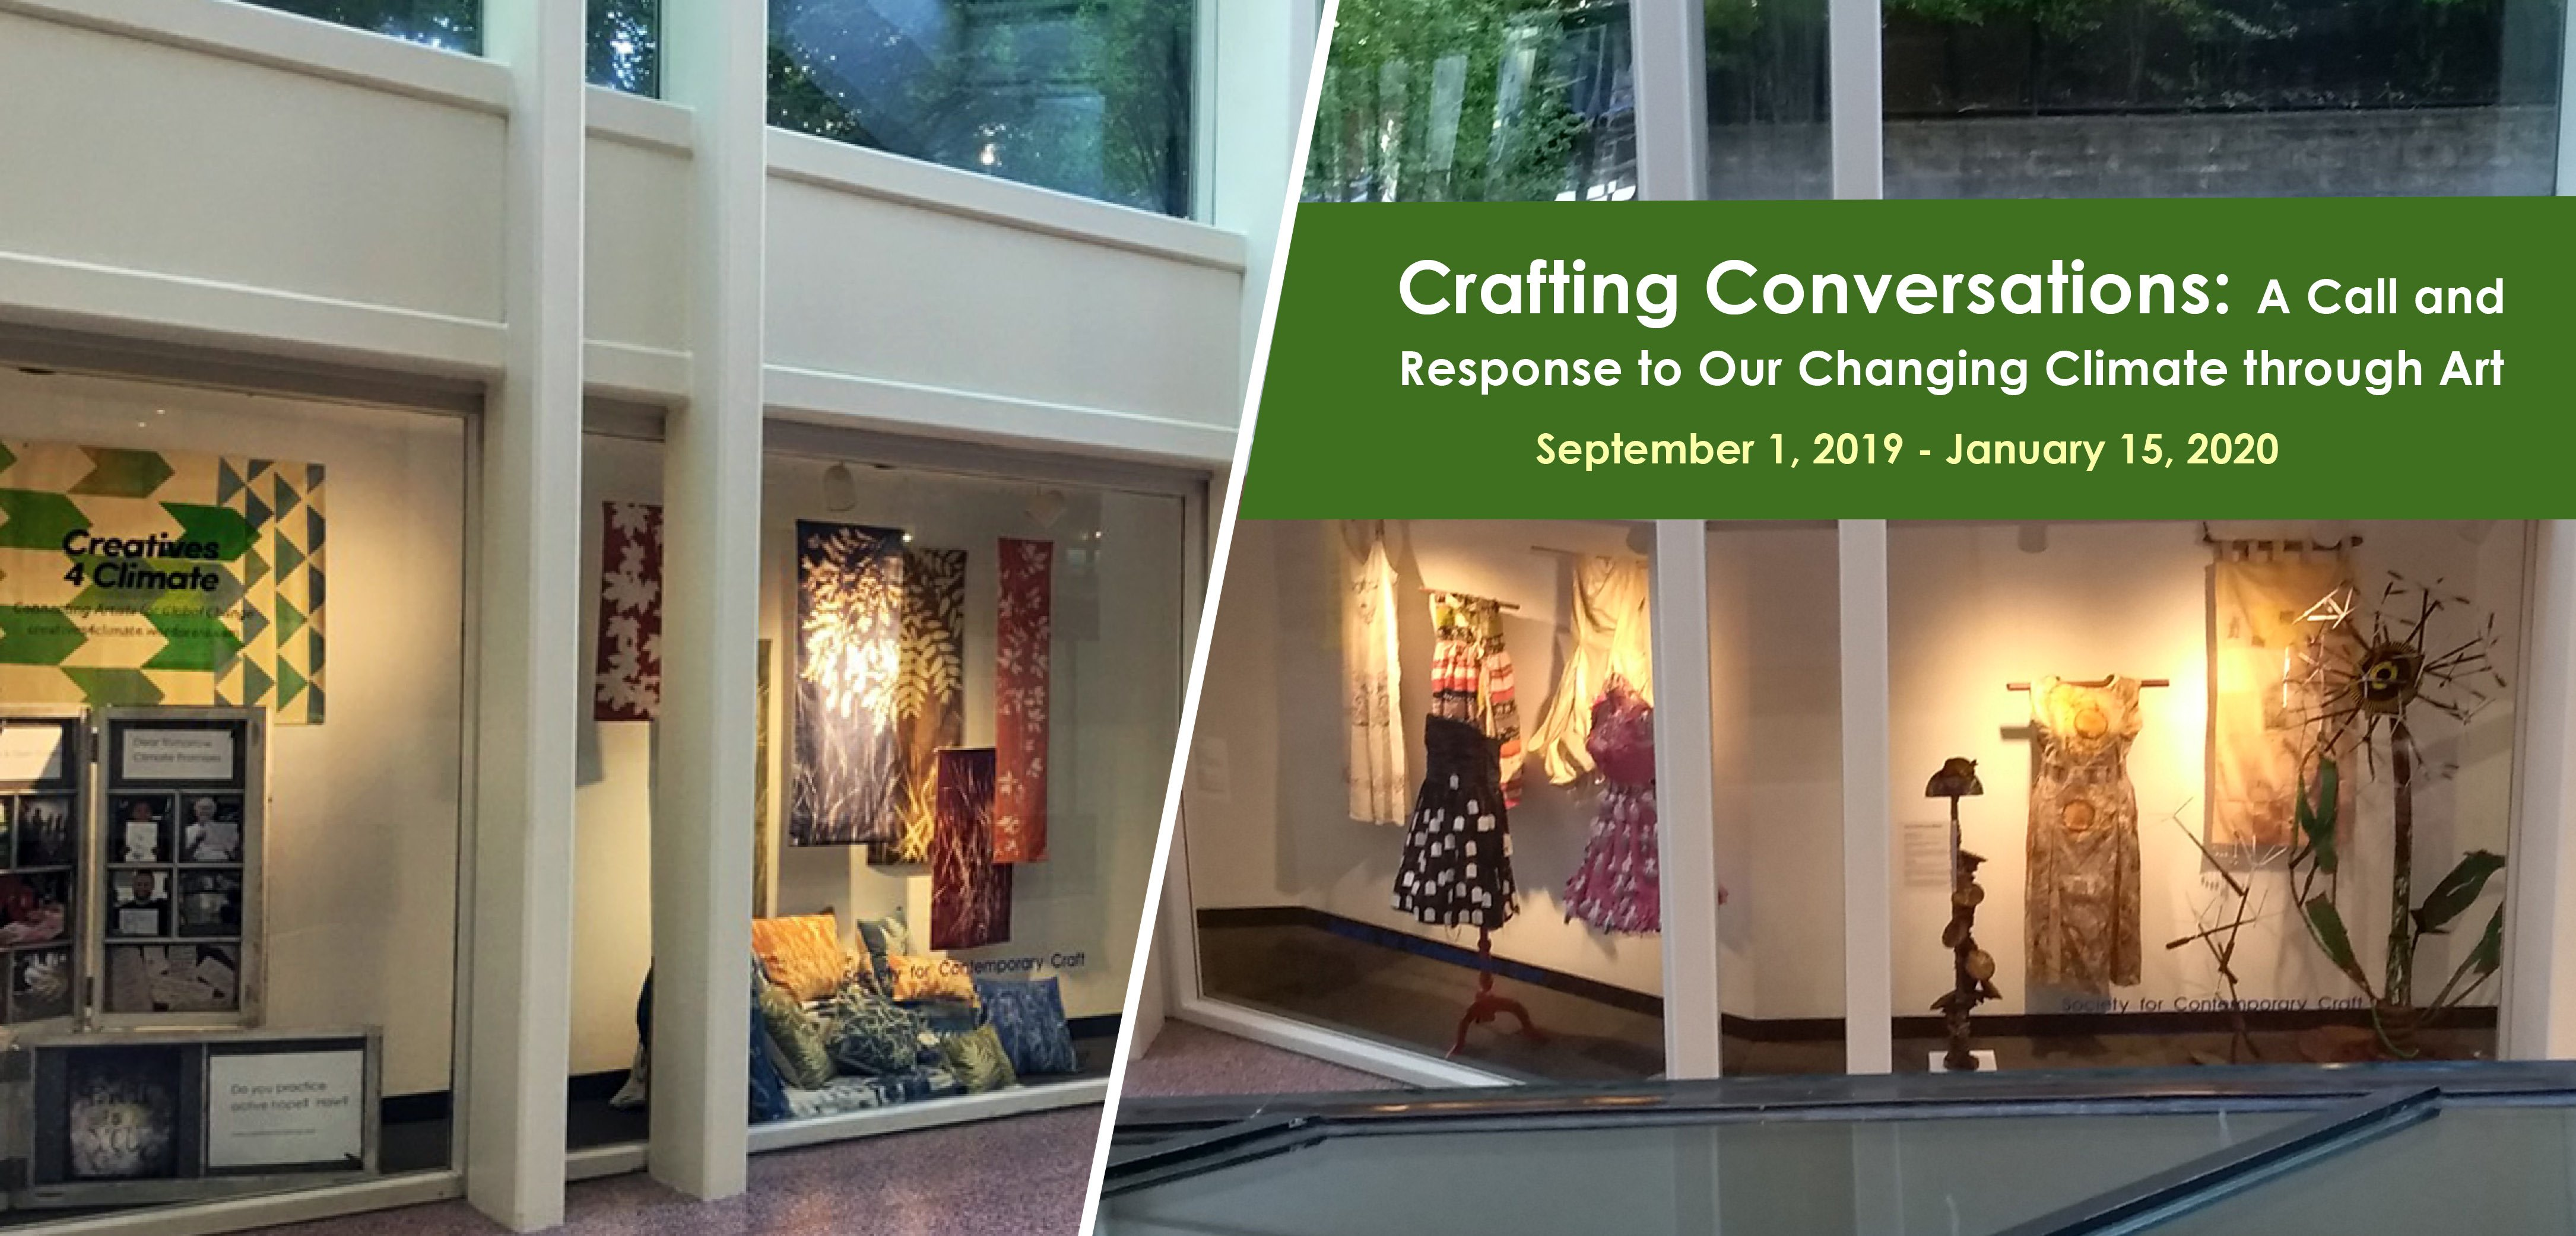 Crafting Conversations: A call and response to our changing climate through art